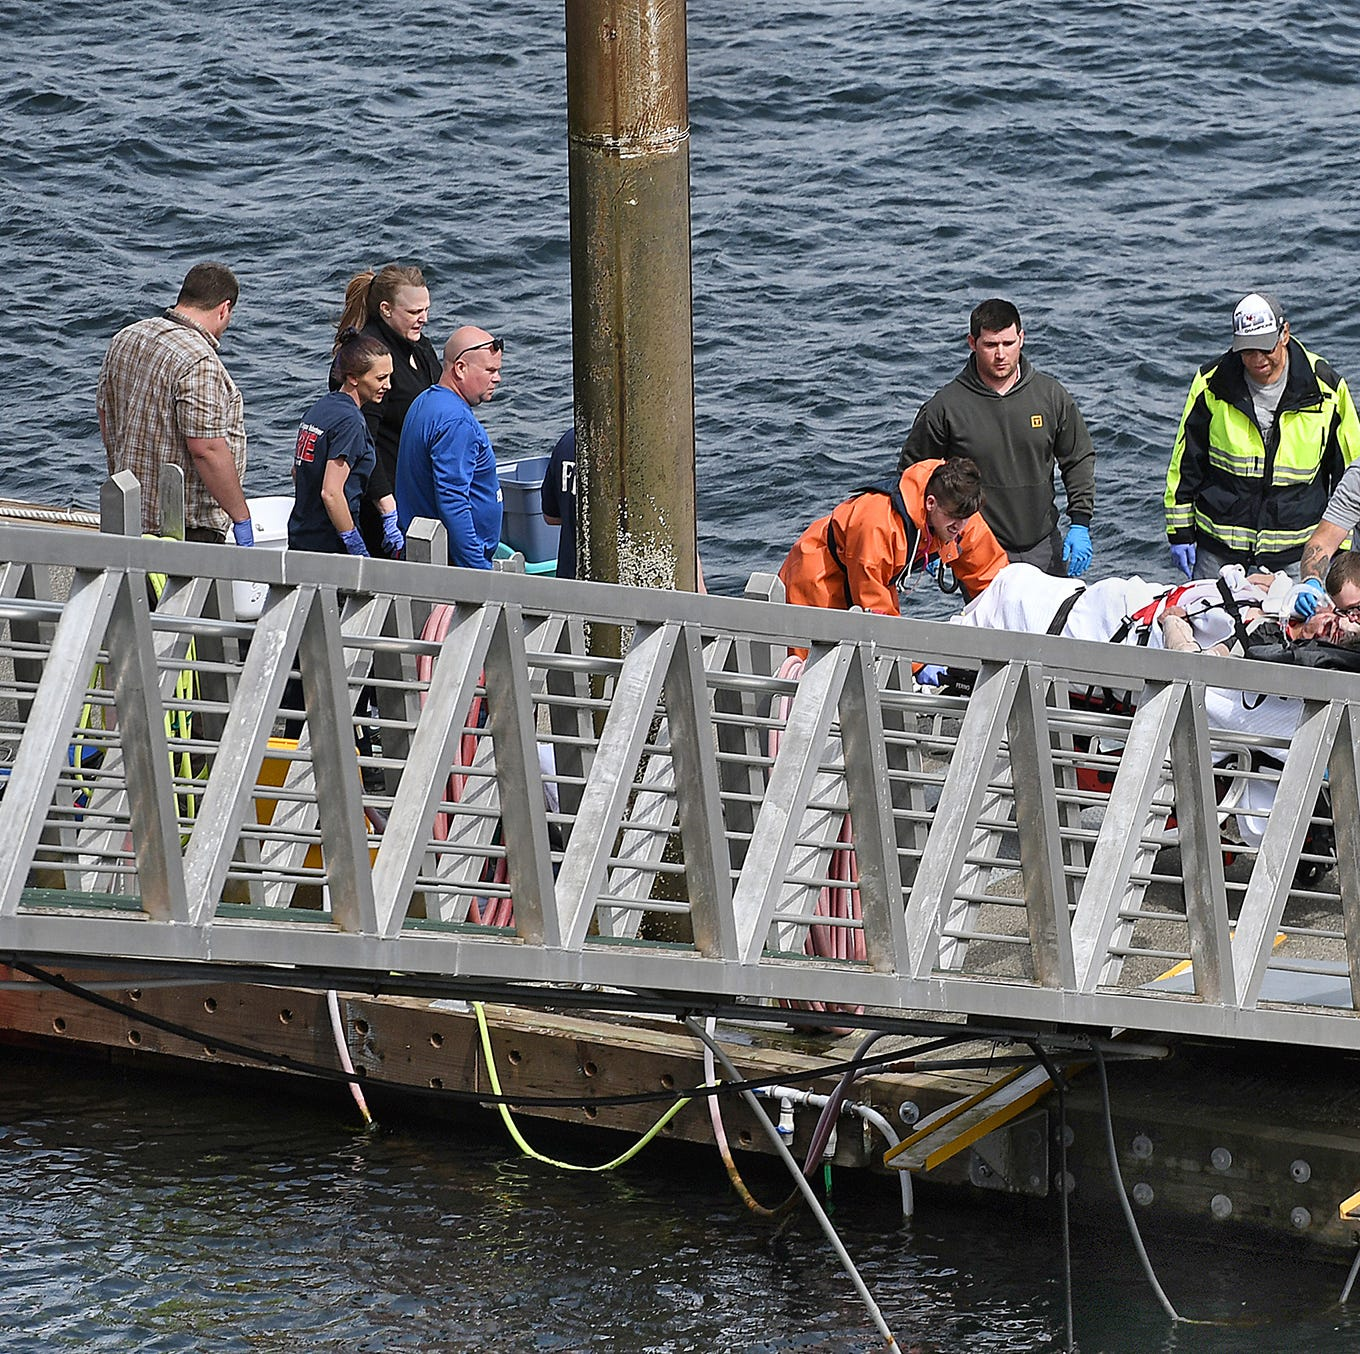 Two floatplanes collide in midair near Ketchikan, Alaska; at least 4 dead